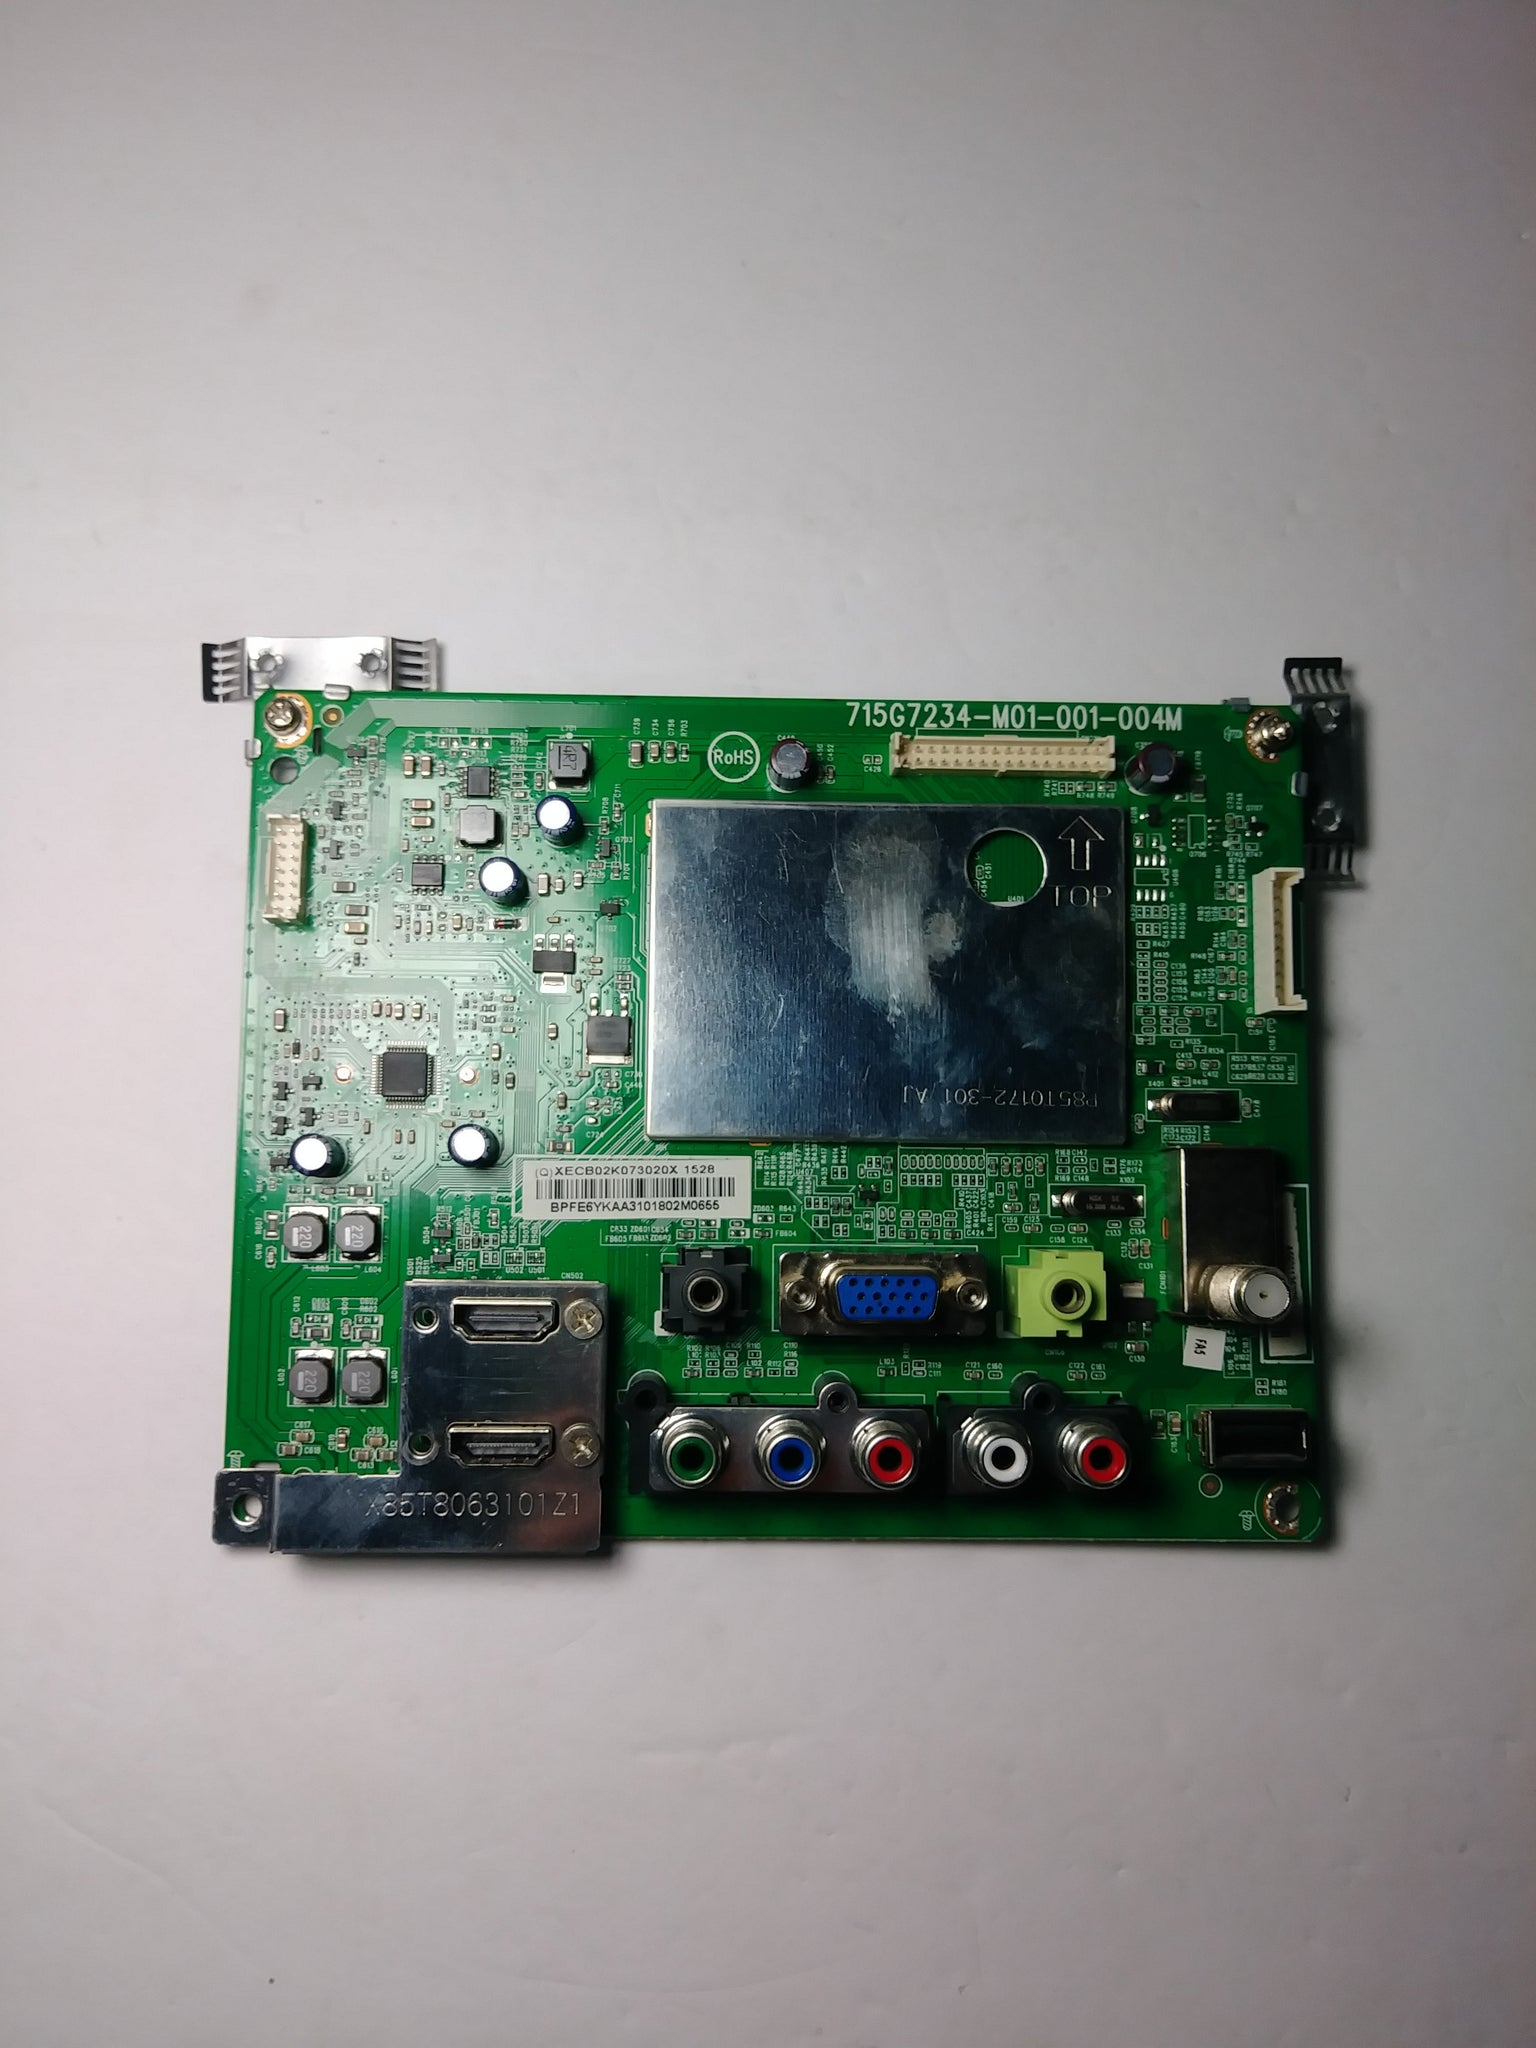 Vizio 756TXECB02K0730 Main Board for D28H-C1 (LTT3TFAR Serial)